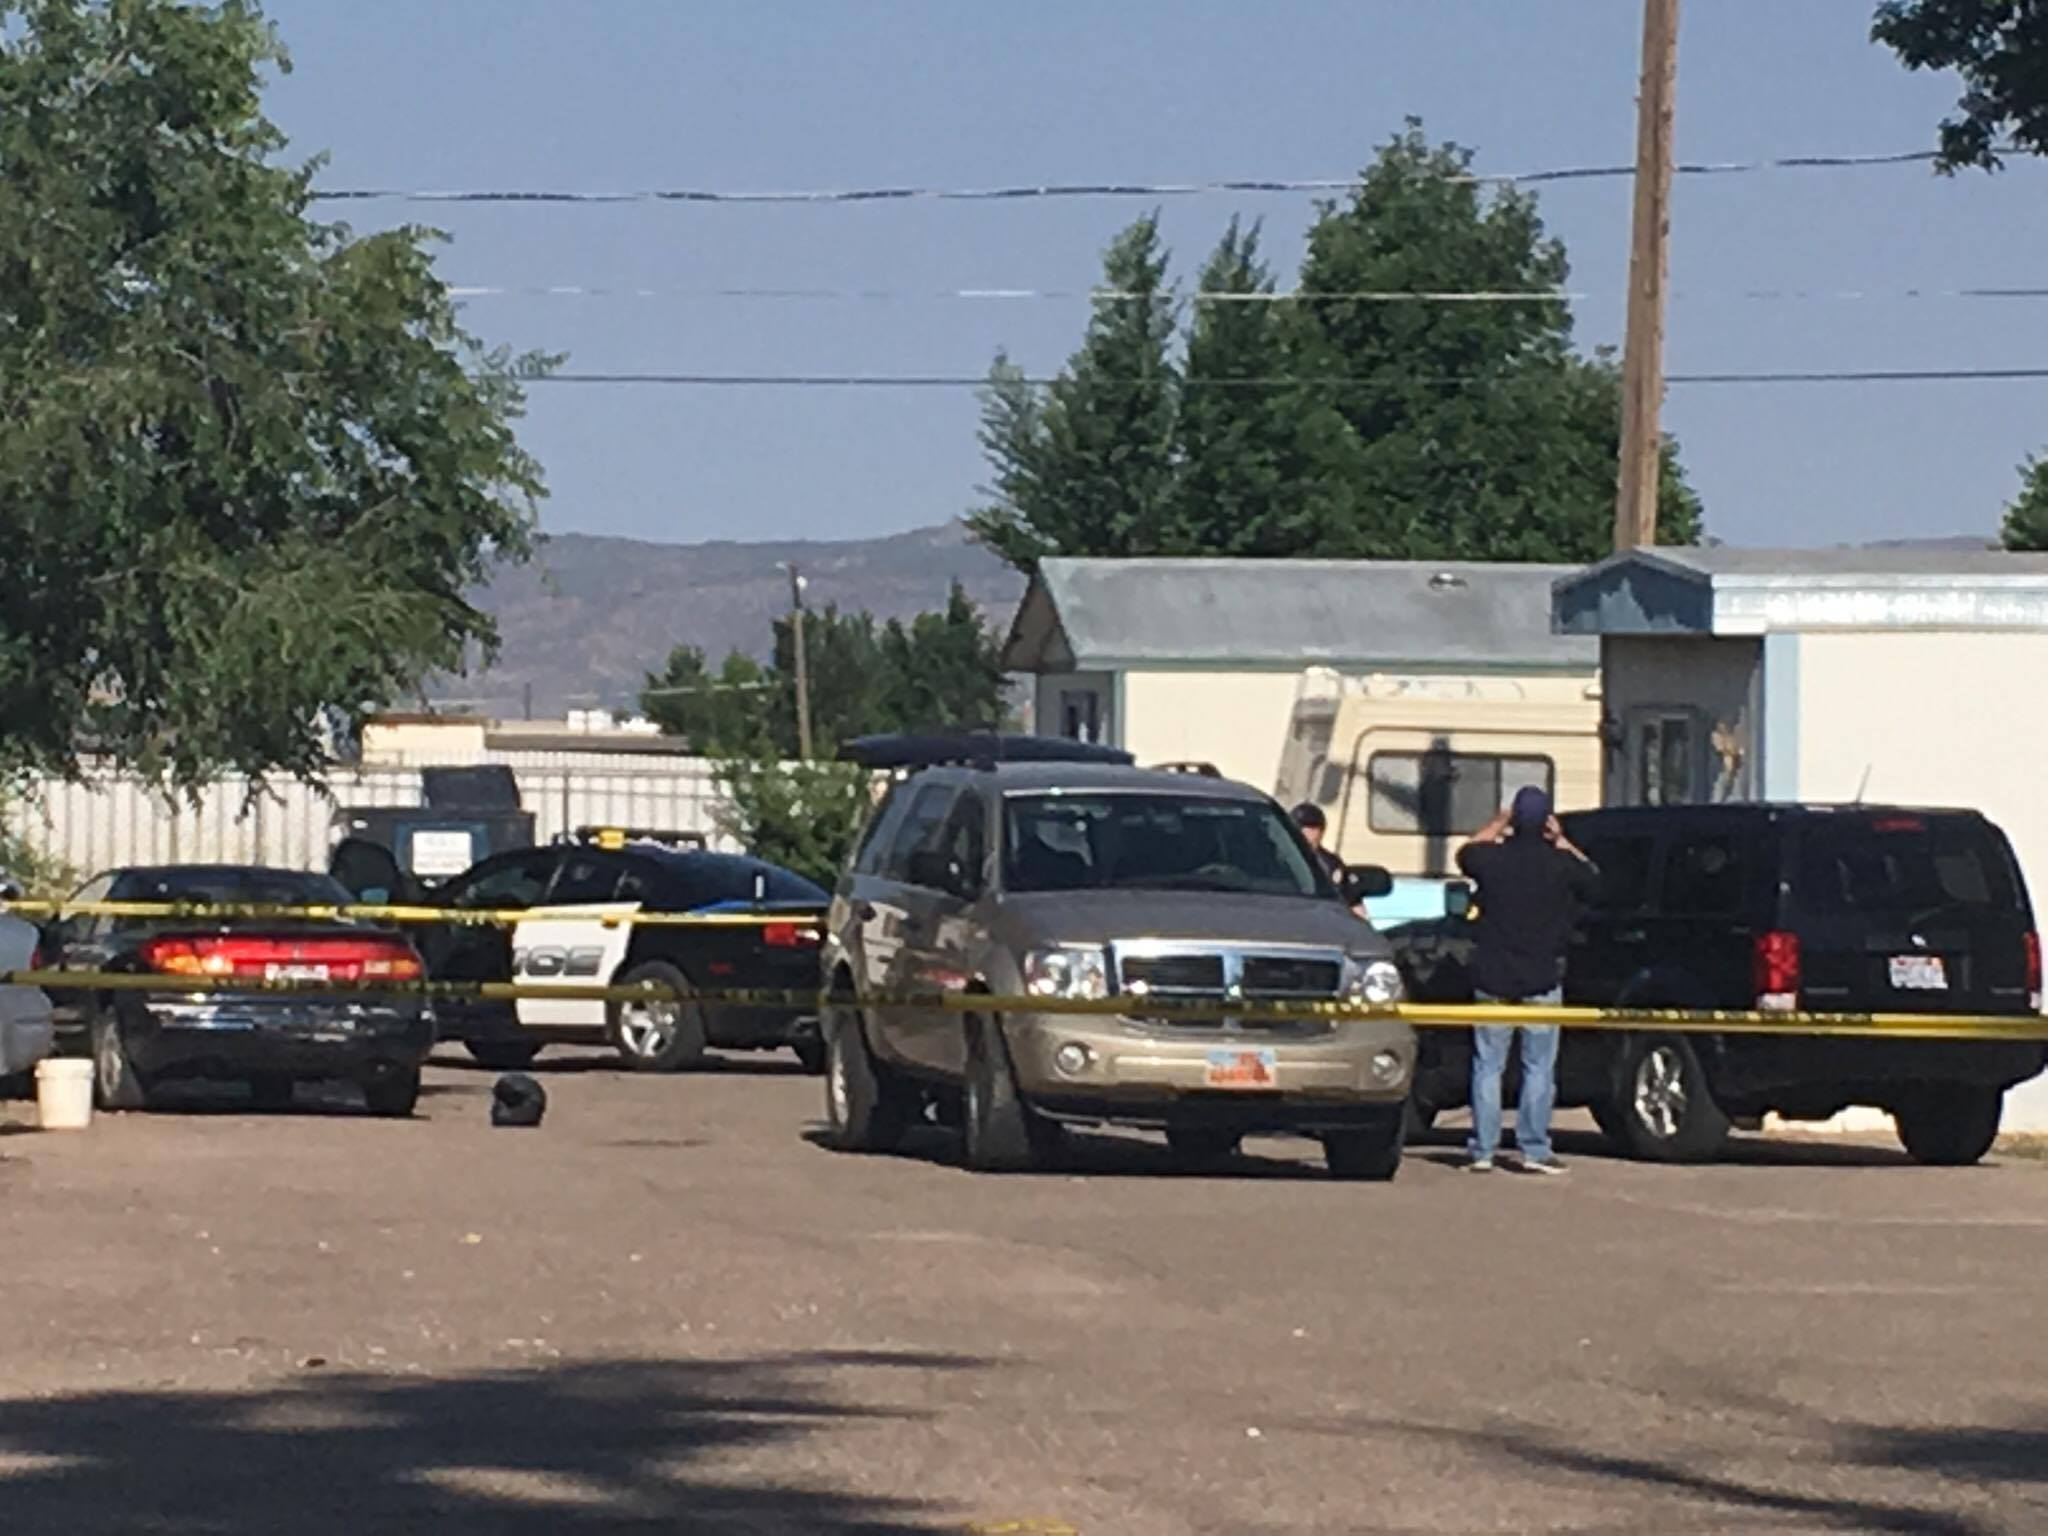 Cedar City Police found a man dead Sunday morning when they responded to report of gunshots at a home in the Reber Court trailer park at 515 N. 400 West in Cedar City, Utah, July 24, 2016 | Photo by Tracie Sullivan, Cedar City News / St. George News